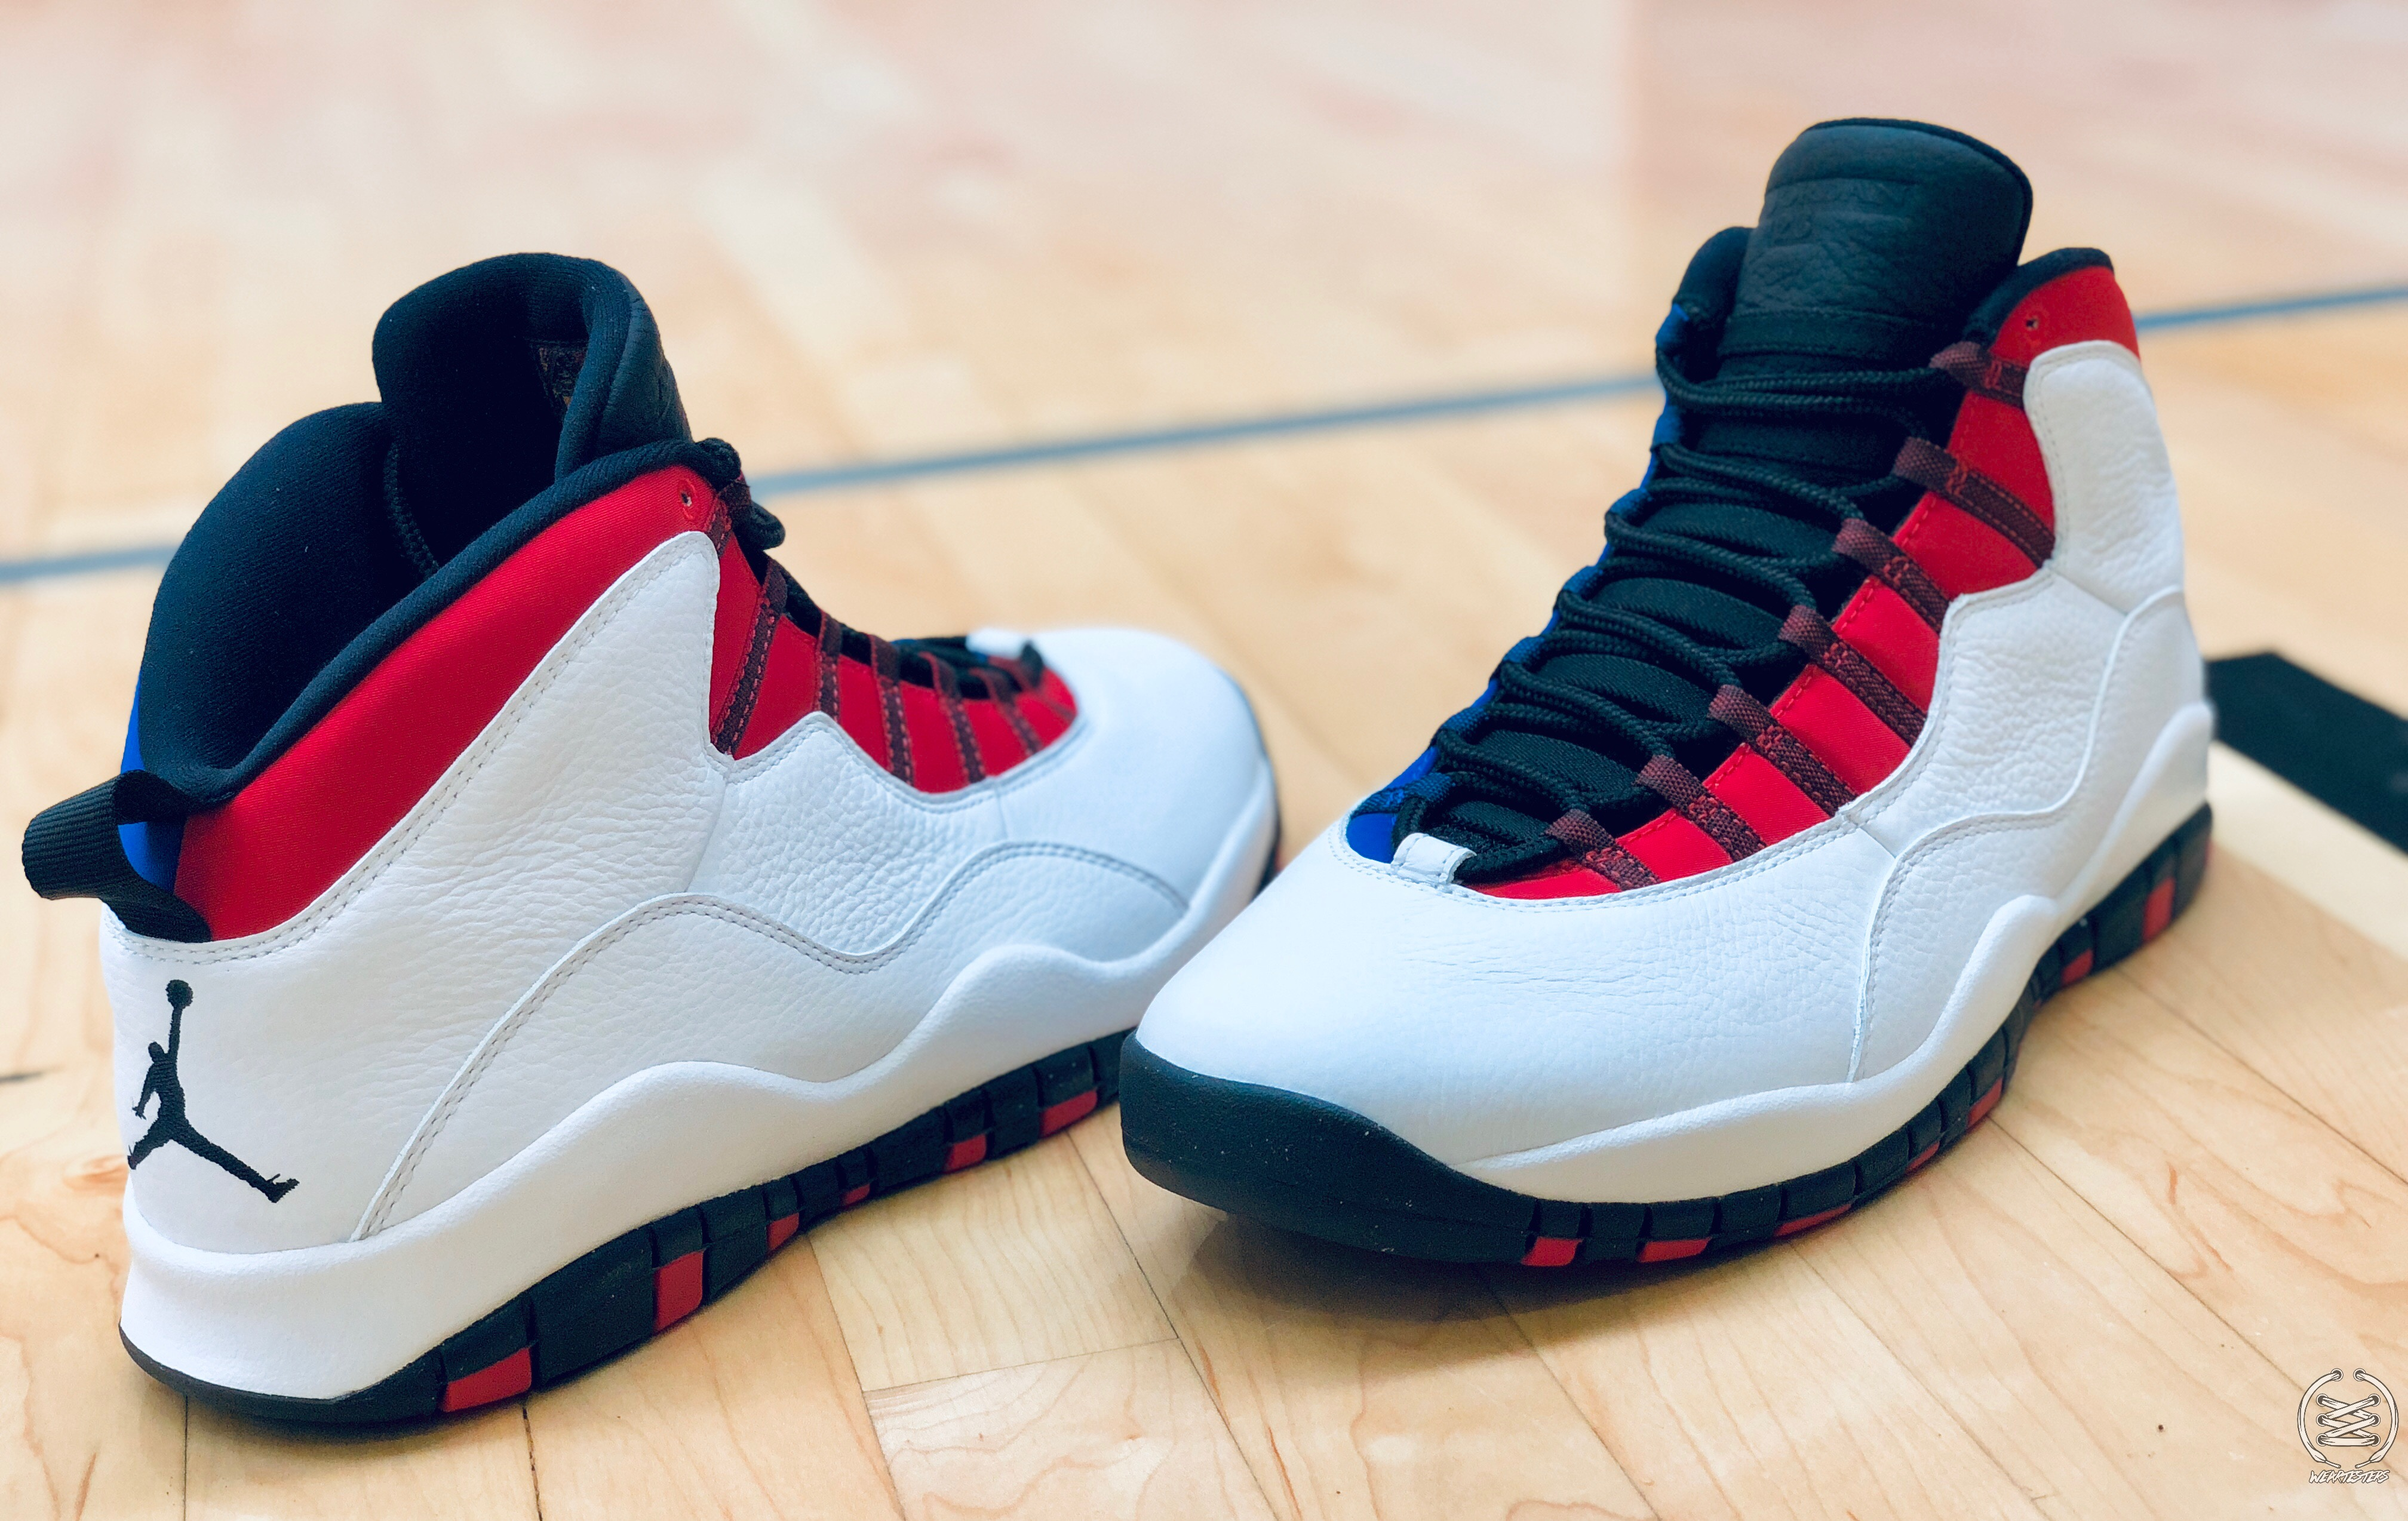 Air Jordan 10 class of 2006 8